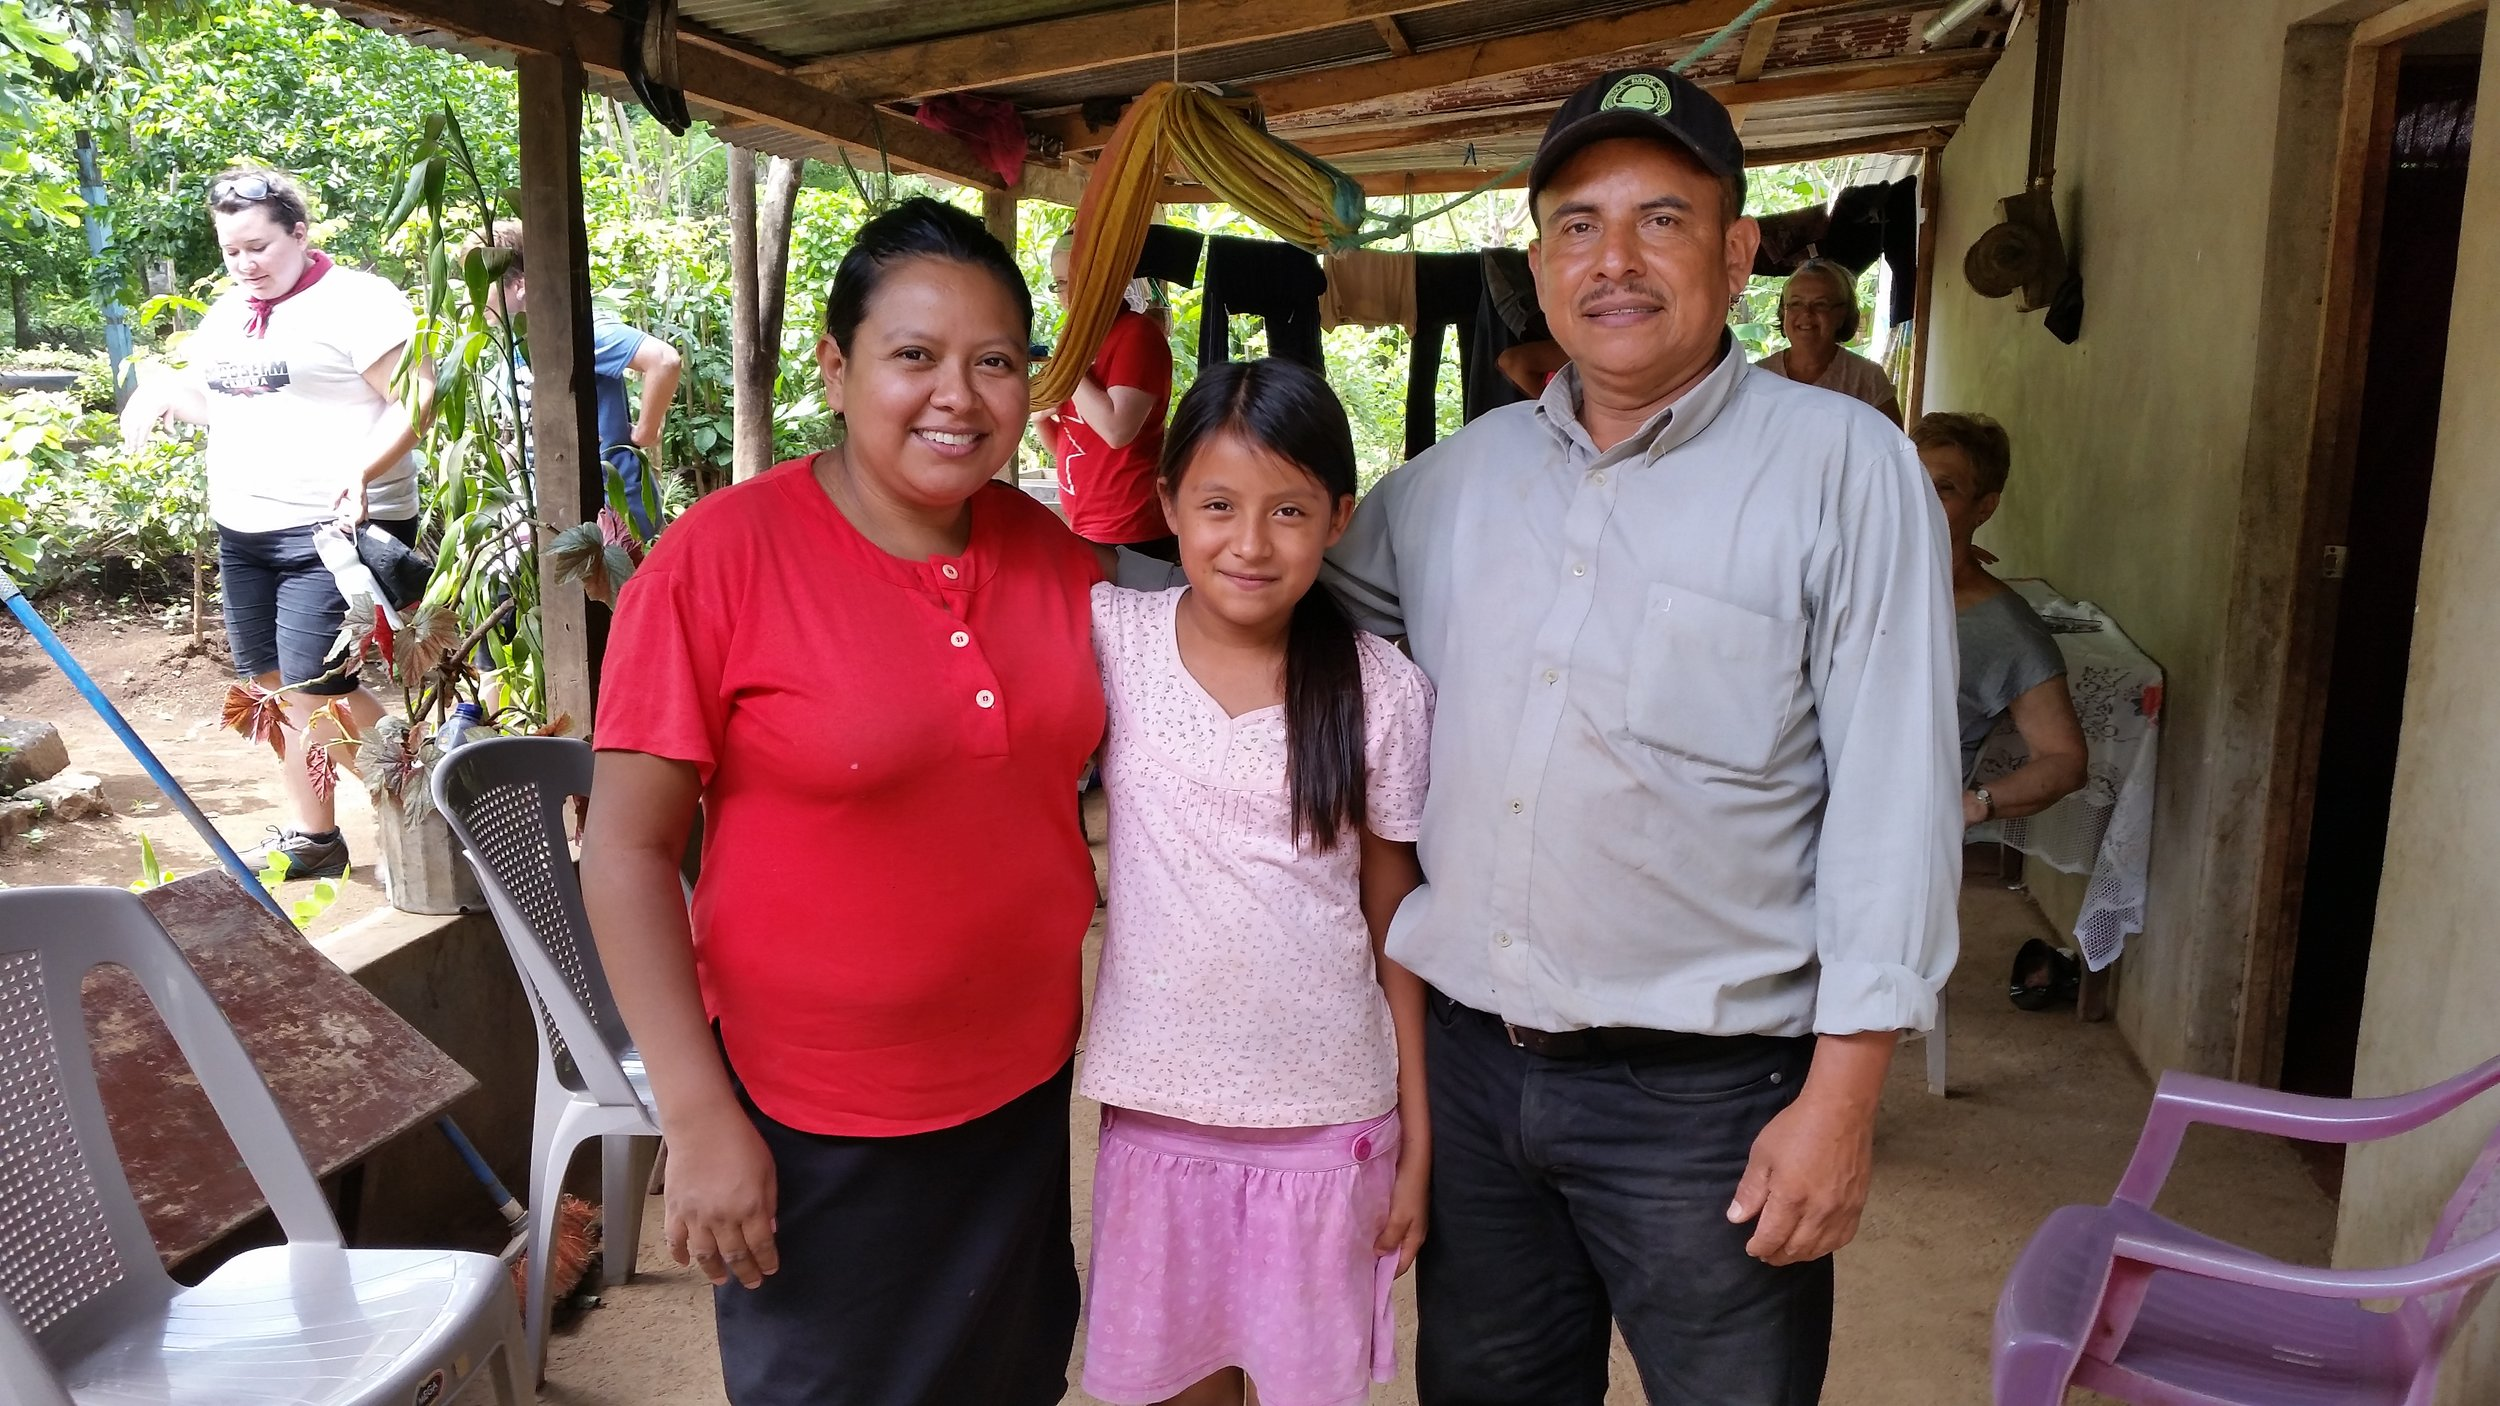 Pastor Pablo, with his wife Maribel and daughter Ann.